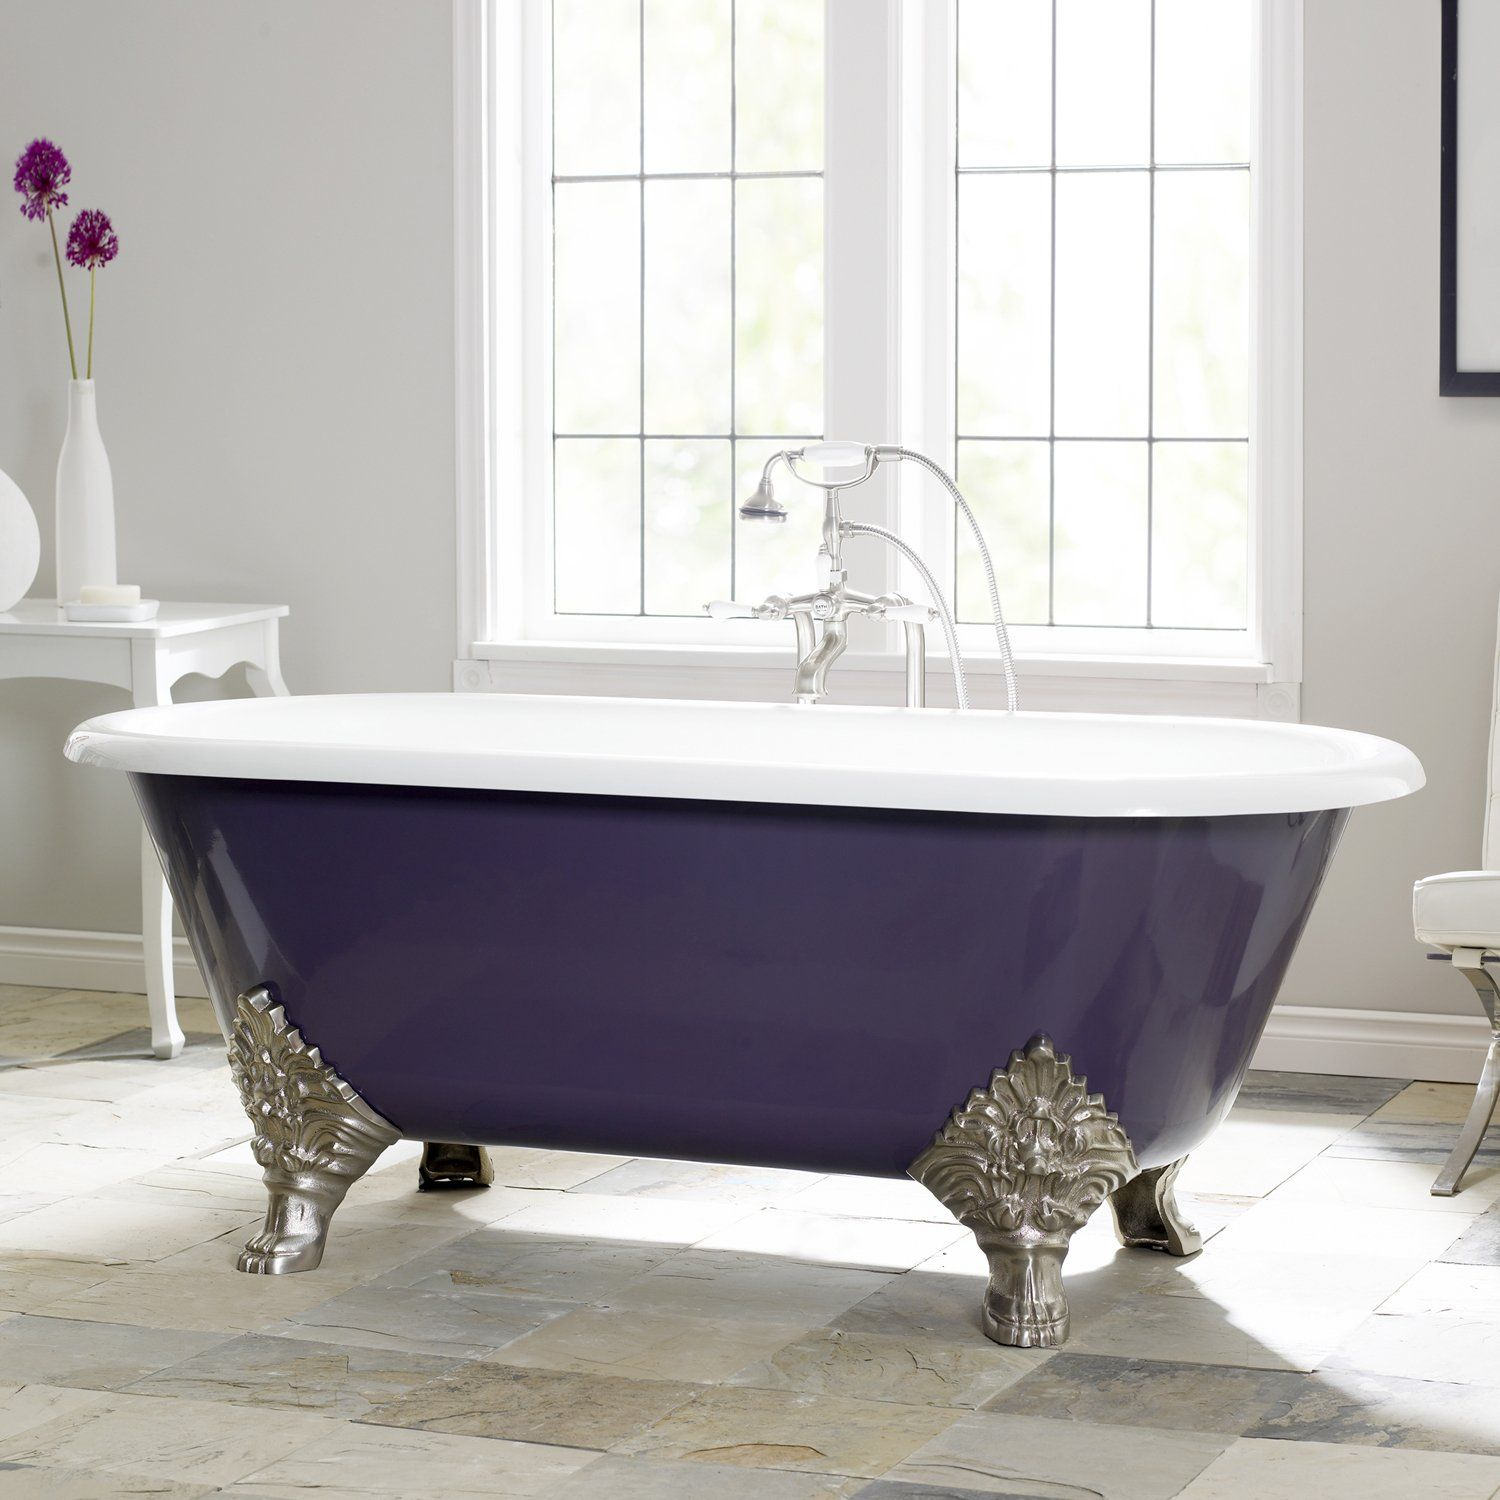 Iuve rediscovered my love for clawfoot bathtubs thanks to the